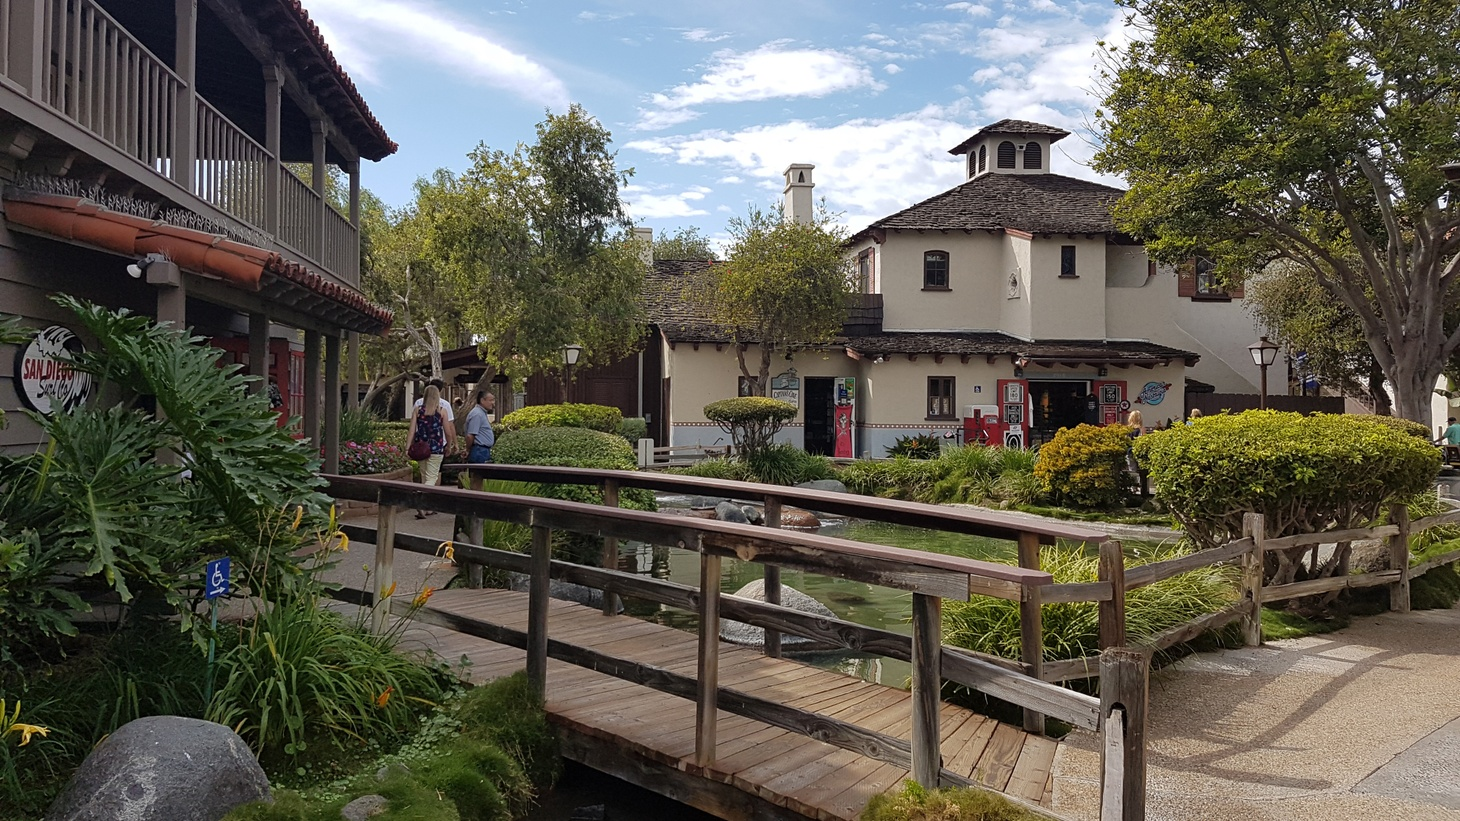 San Diego's Seaport Village, as it currently looks.